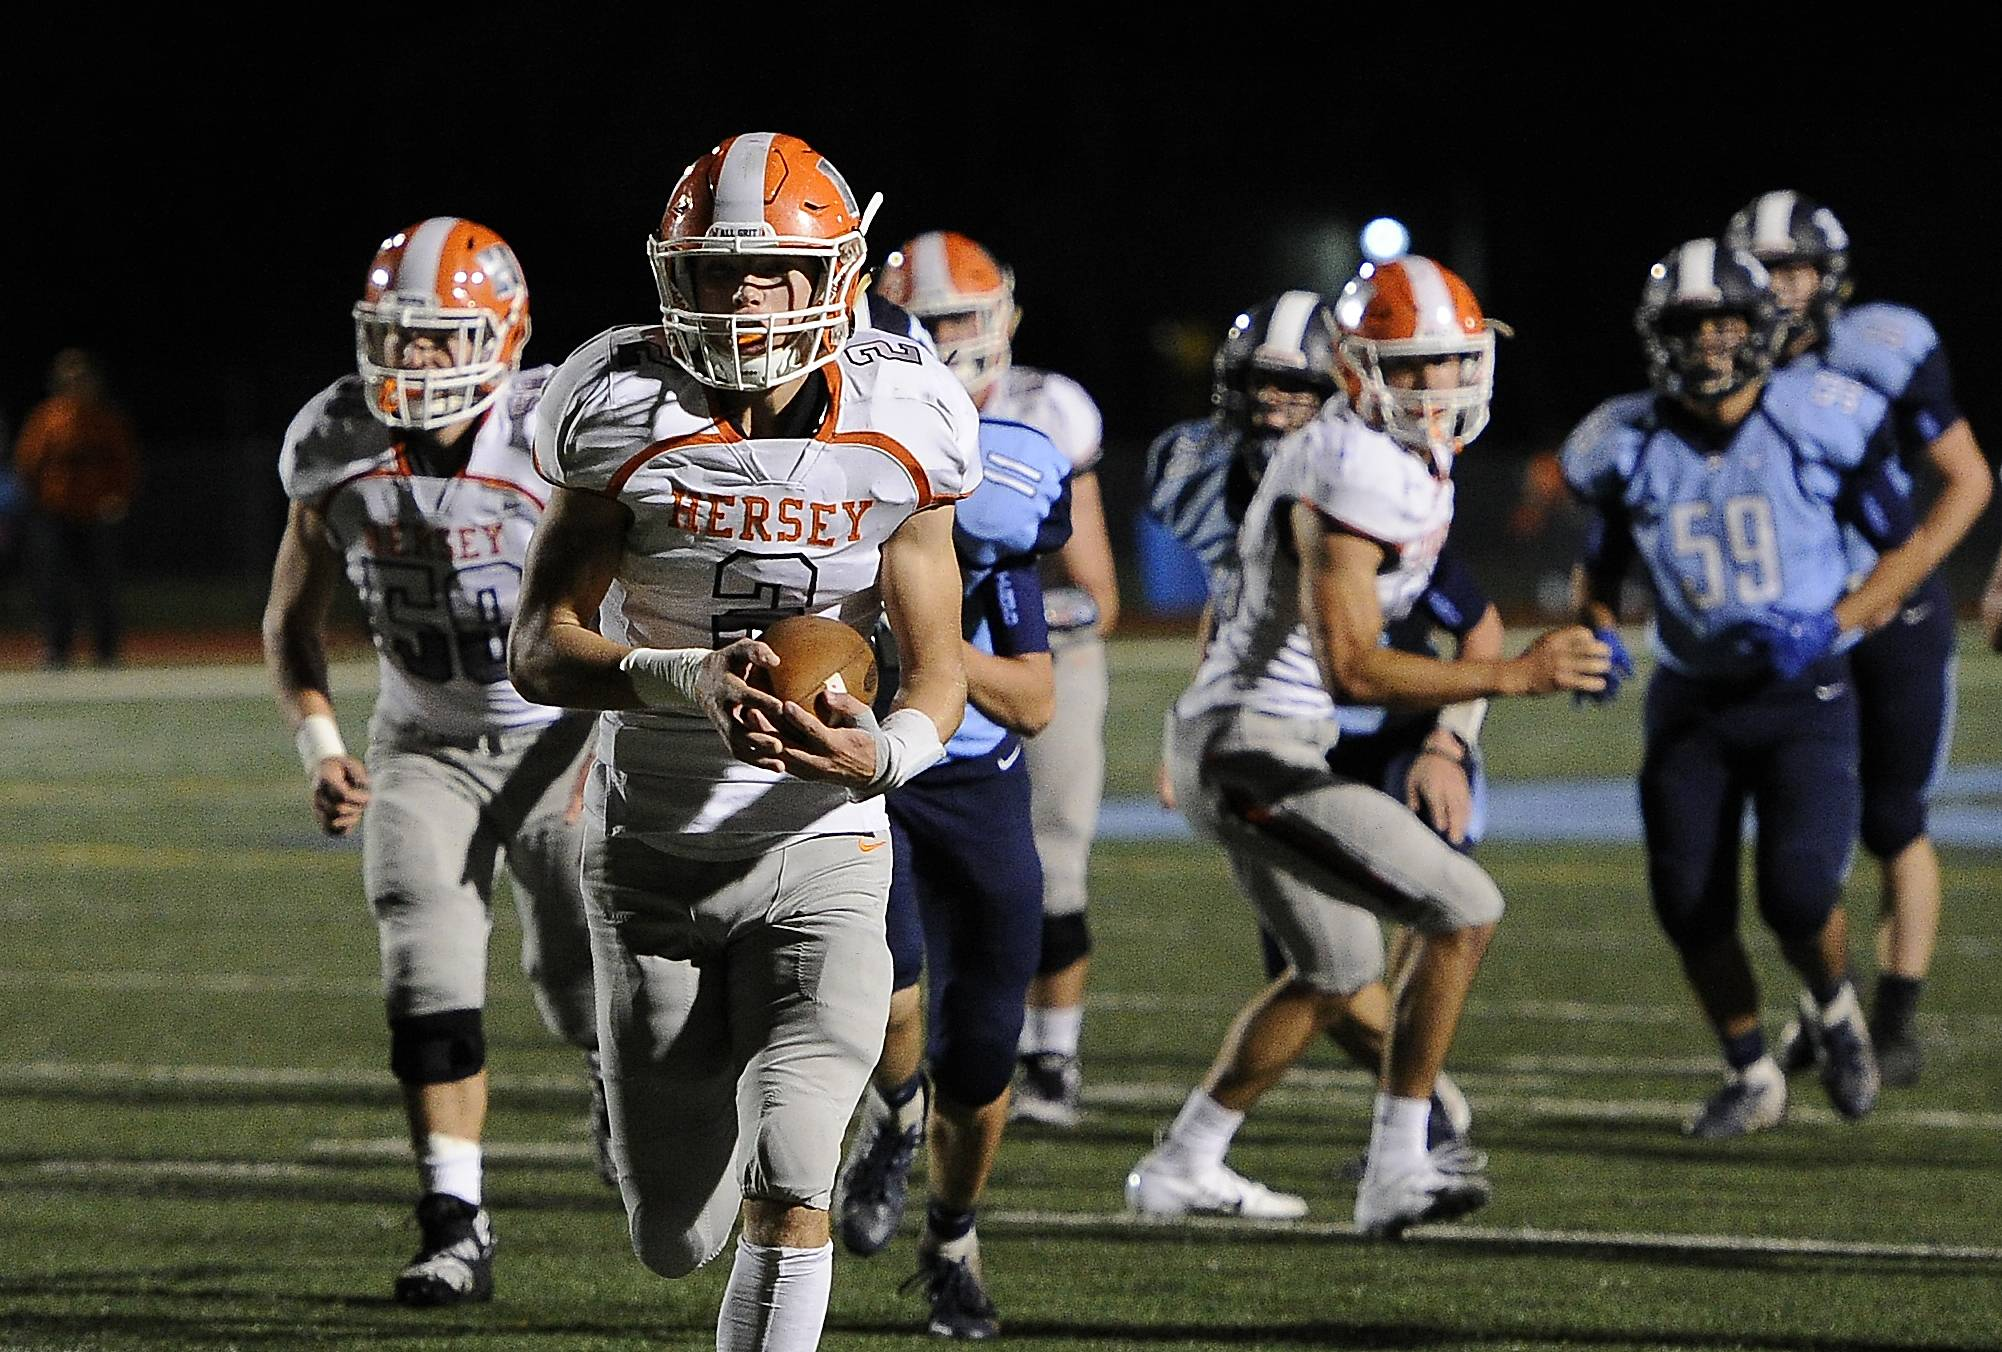 Hersey's Jordan Hansen makes a 22-yard first quarter touchdown run.